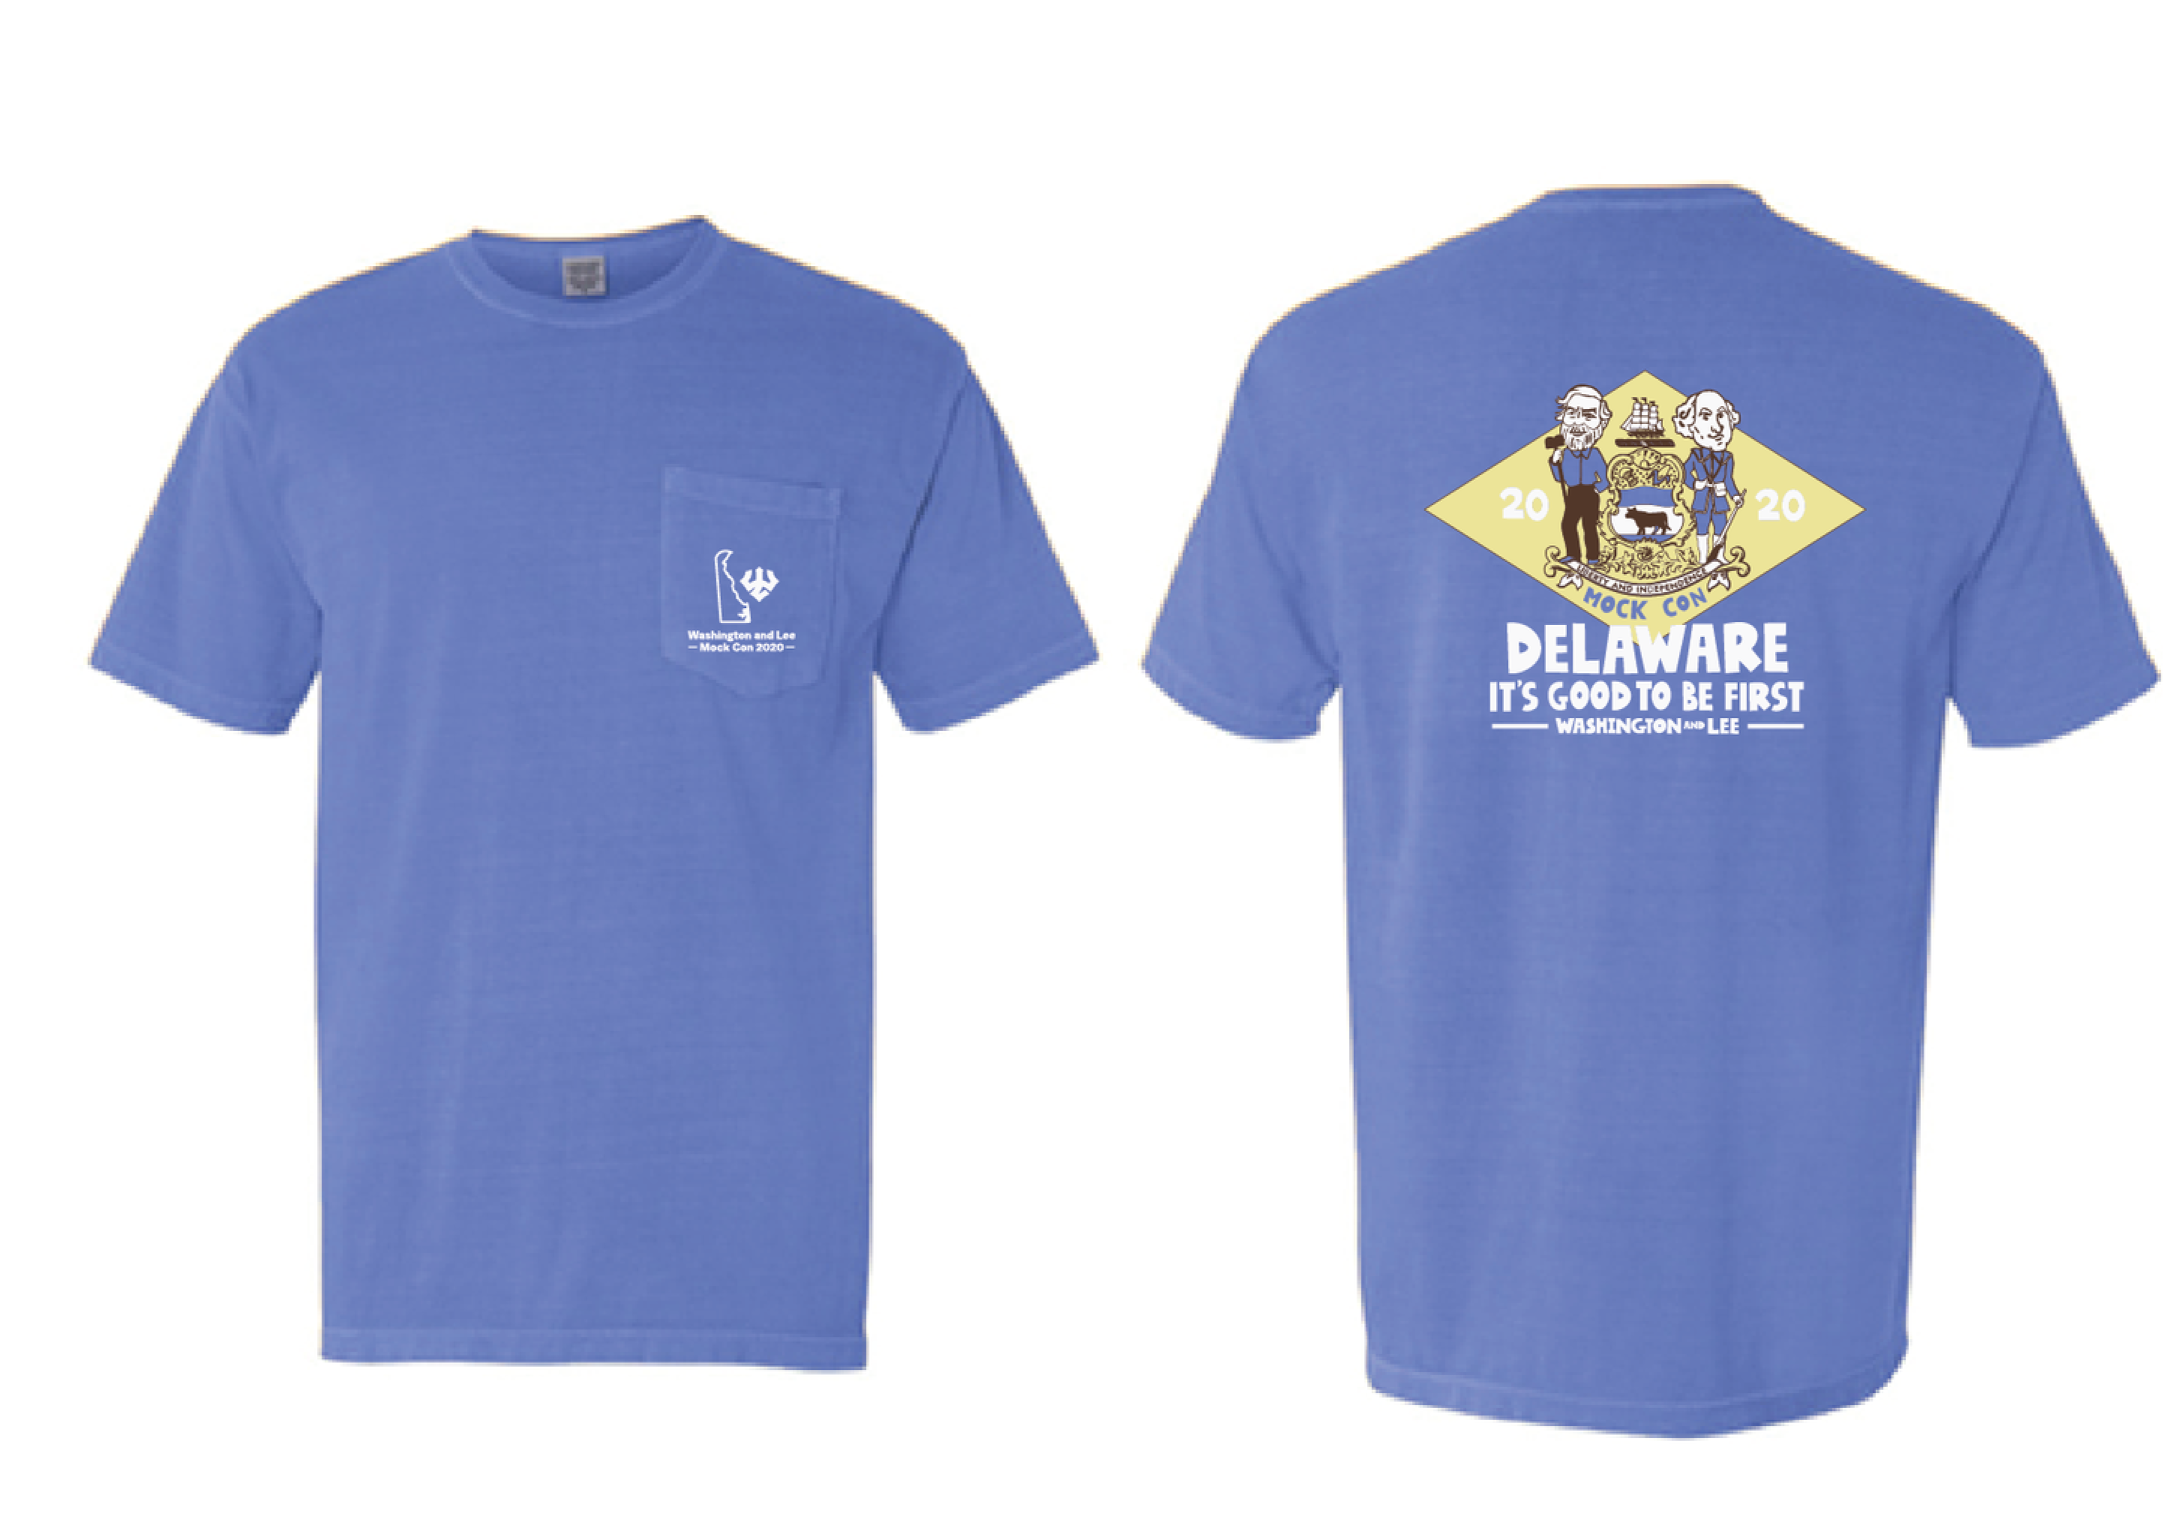 Delaware State Tee